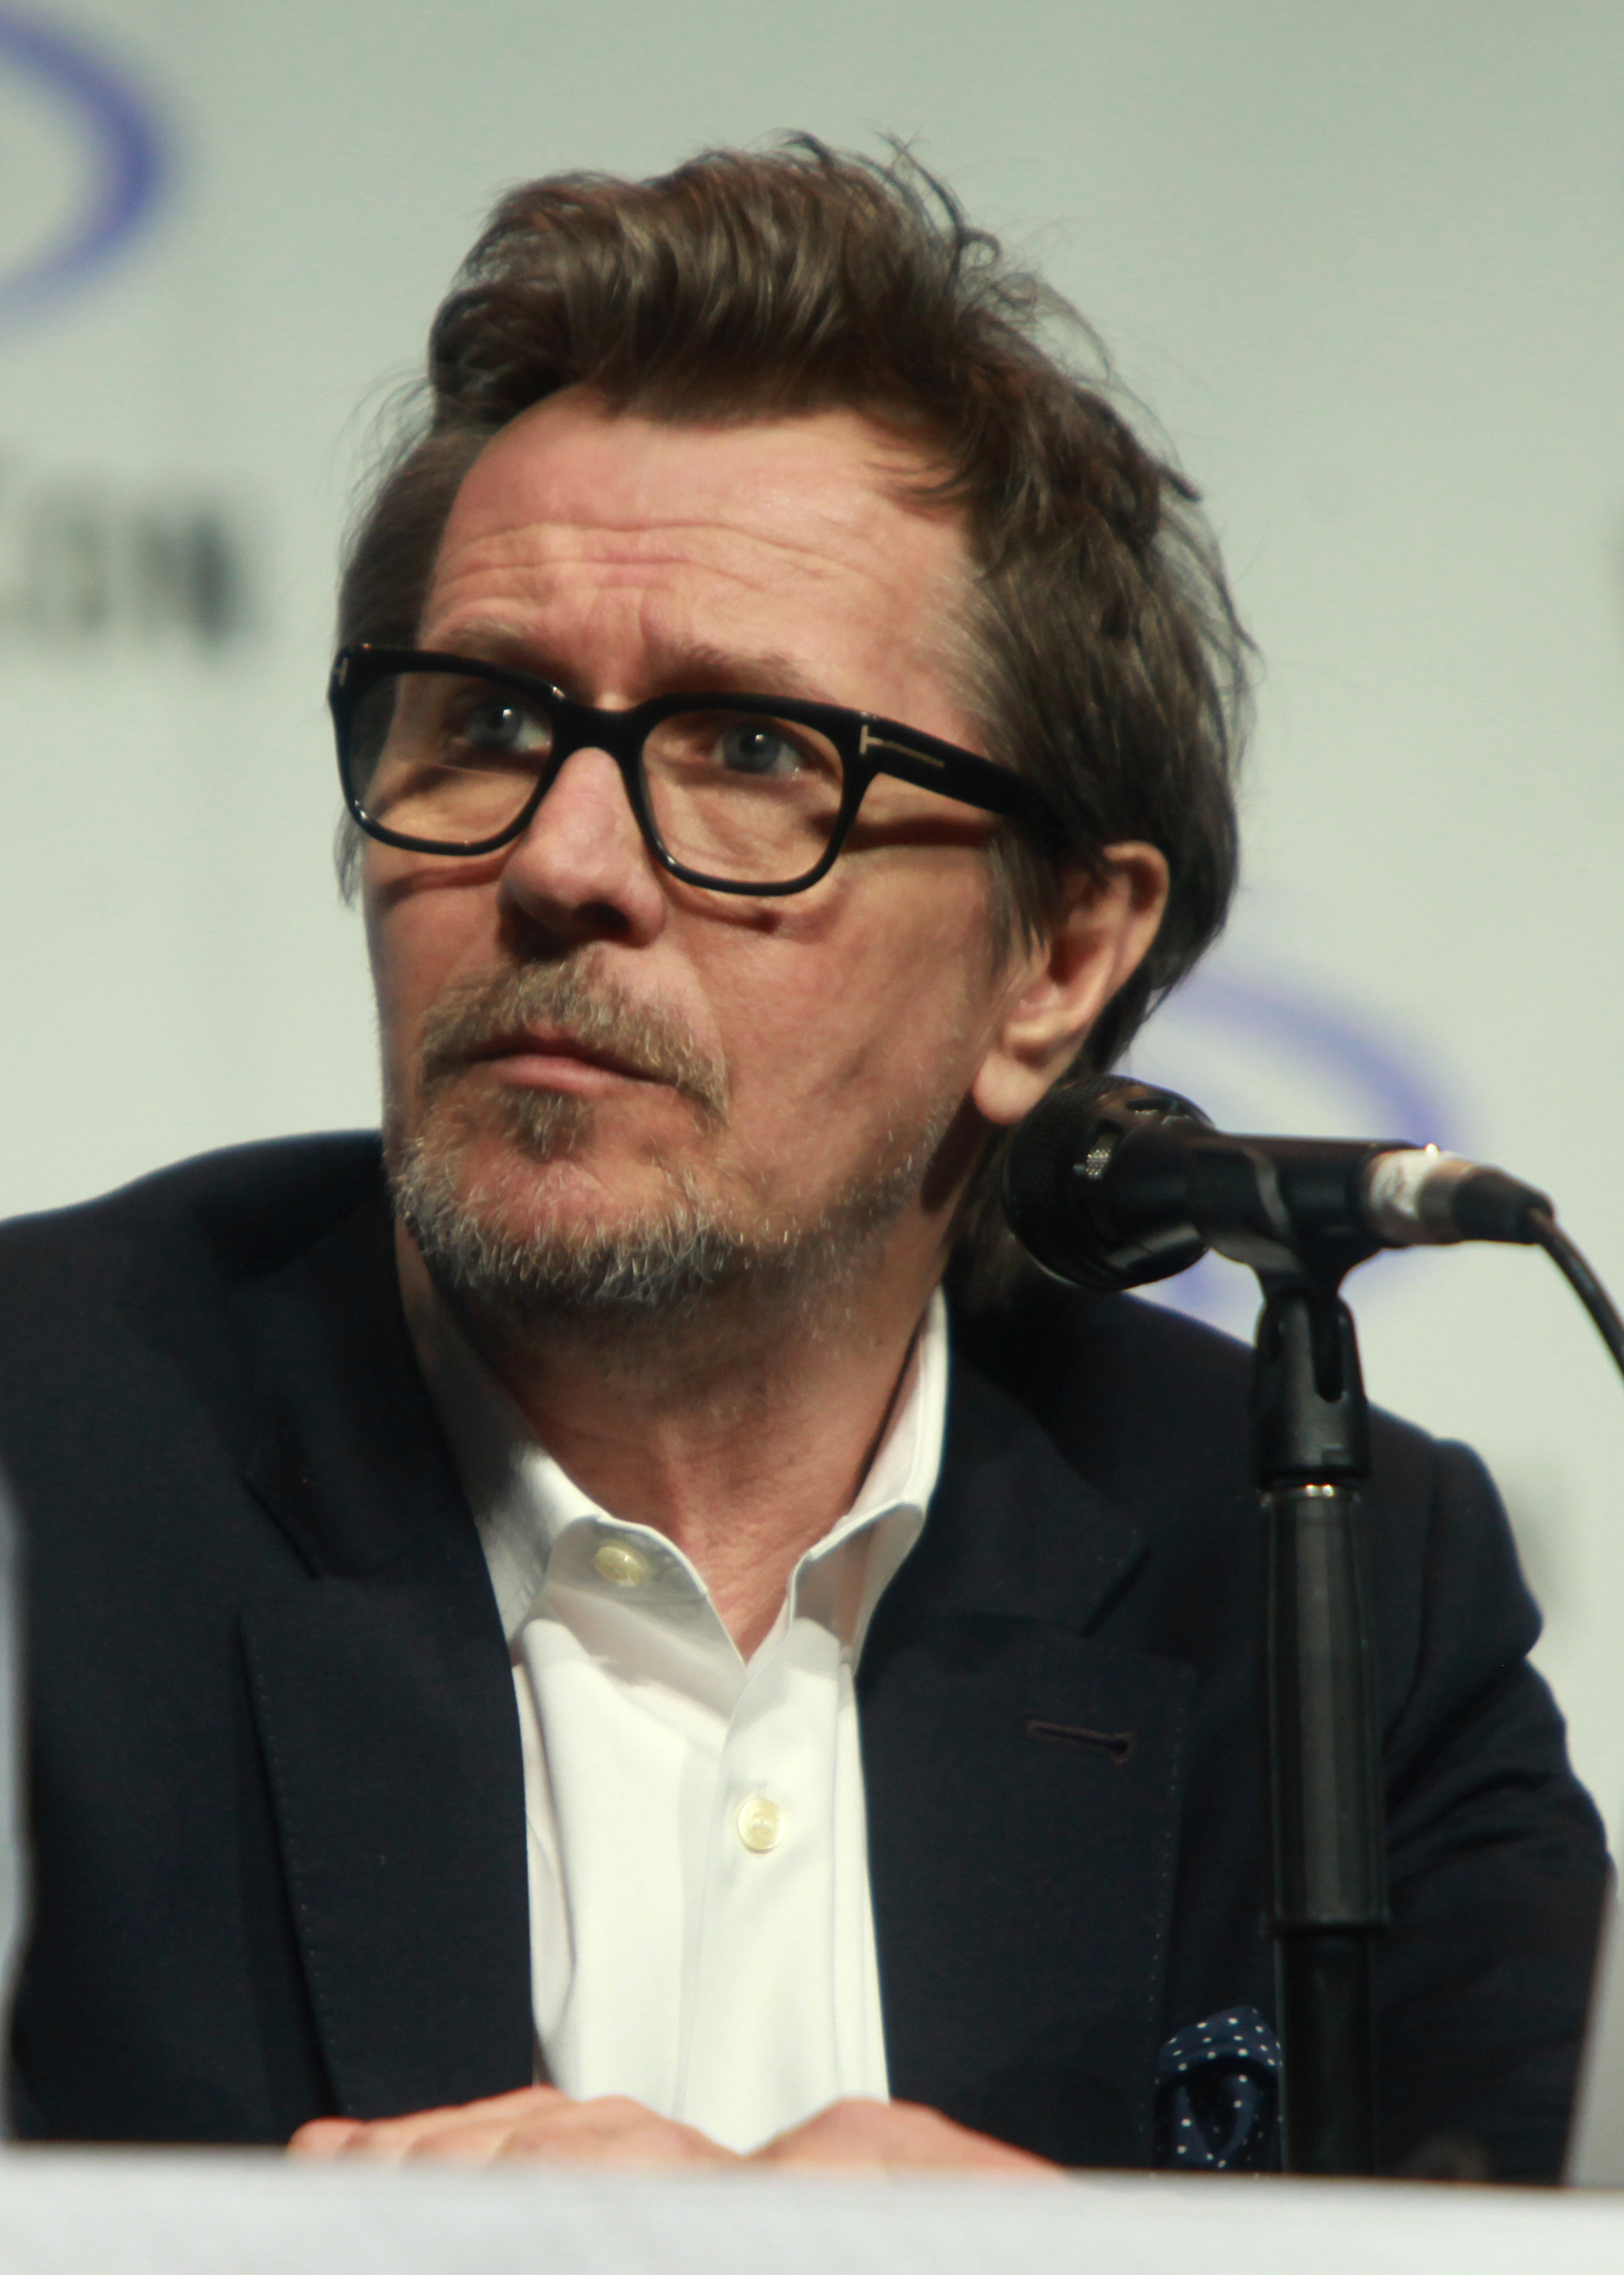 Gary Oldman photo #111902, Gary Oldman image